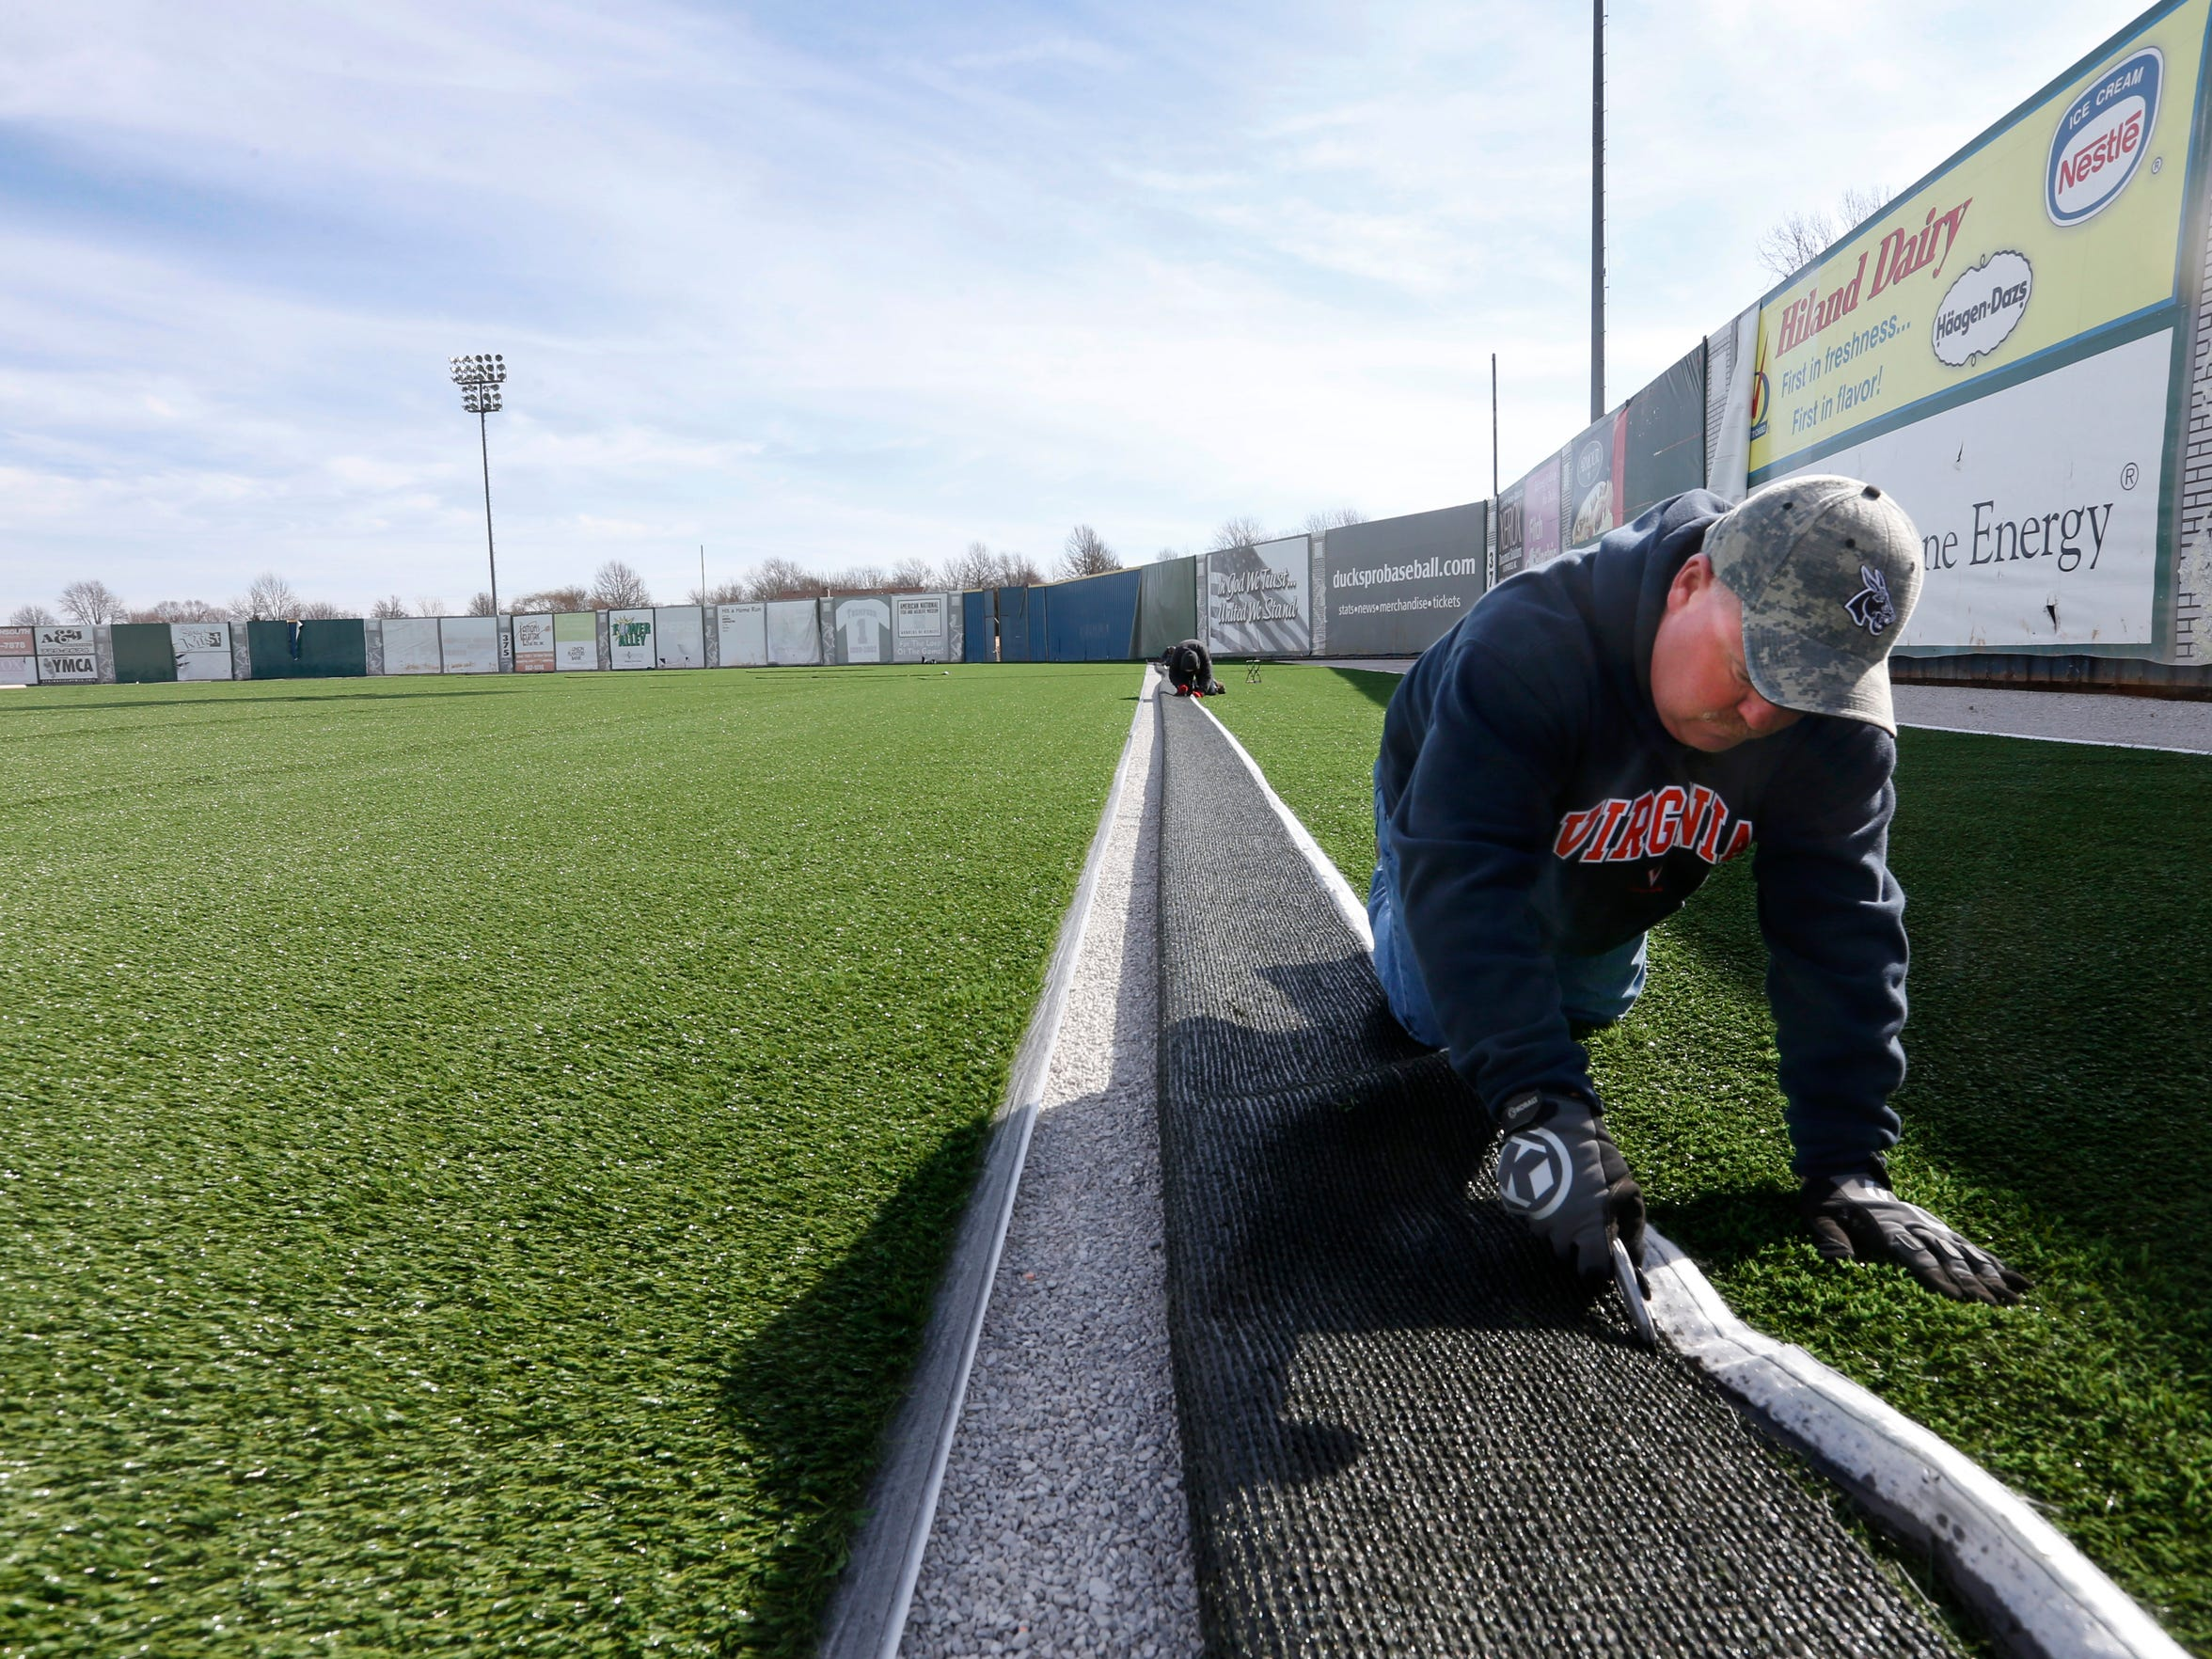 Andy Dalton, of Sports Construction Management, cuts the trim off of a sheet of artificial turf while installing the new field at Duck's Stadium in Ozark on Thursday, Feb. 18, 2016.